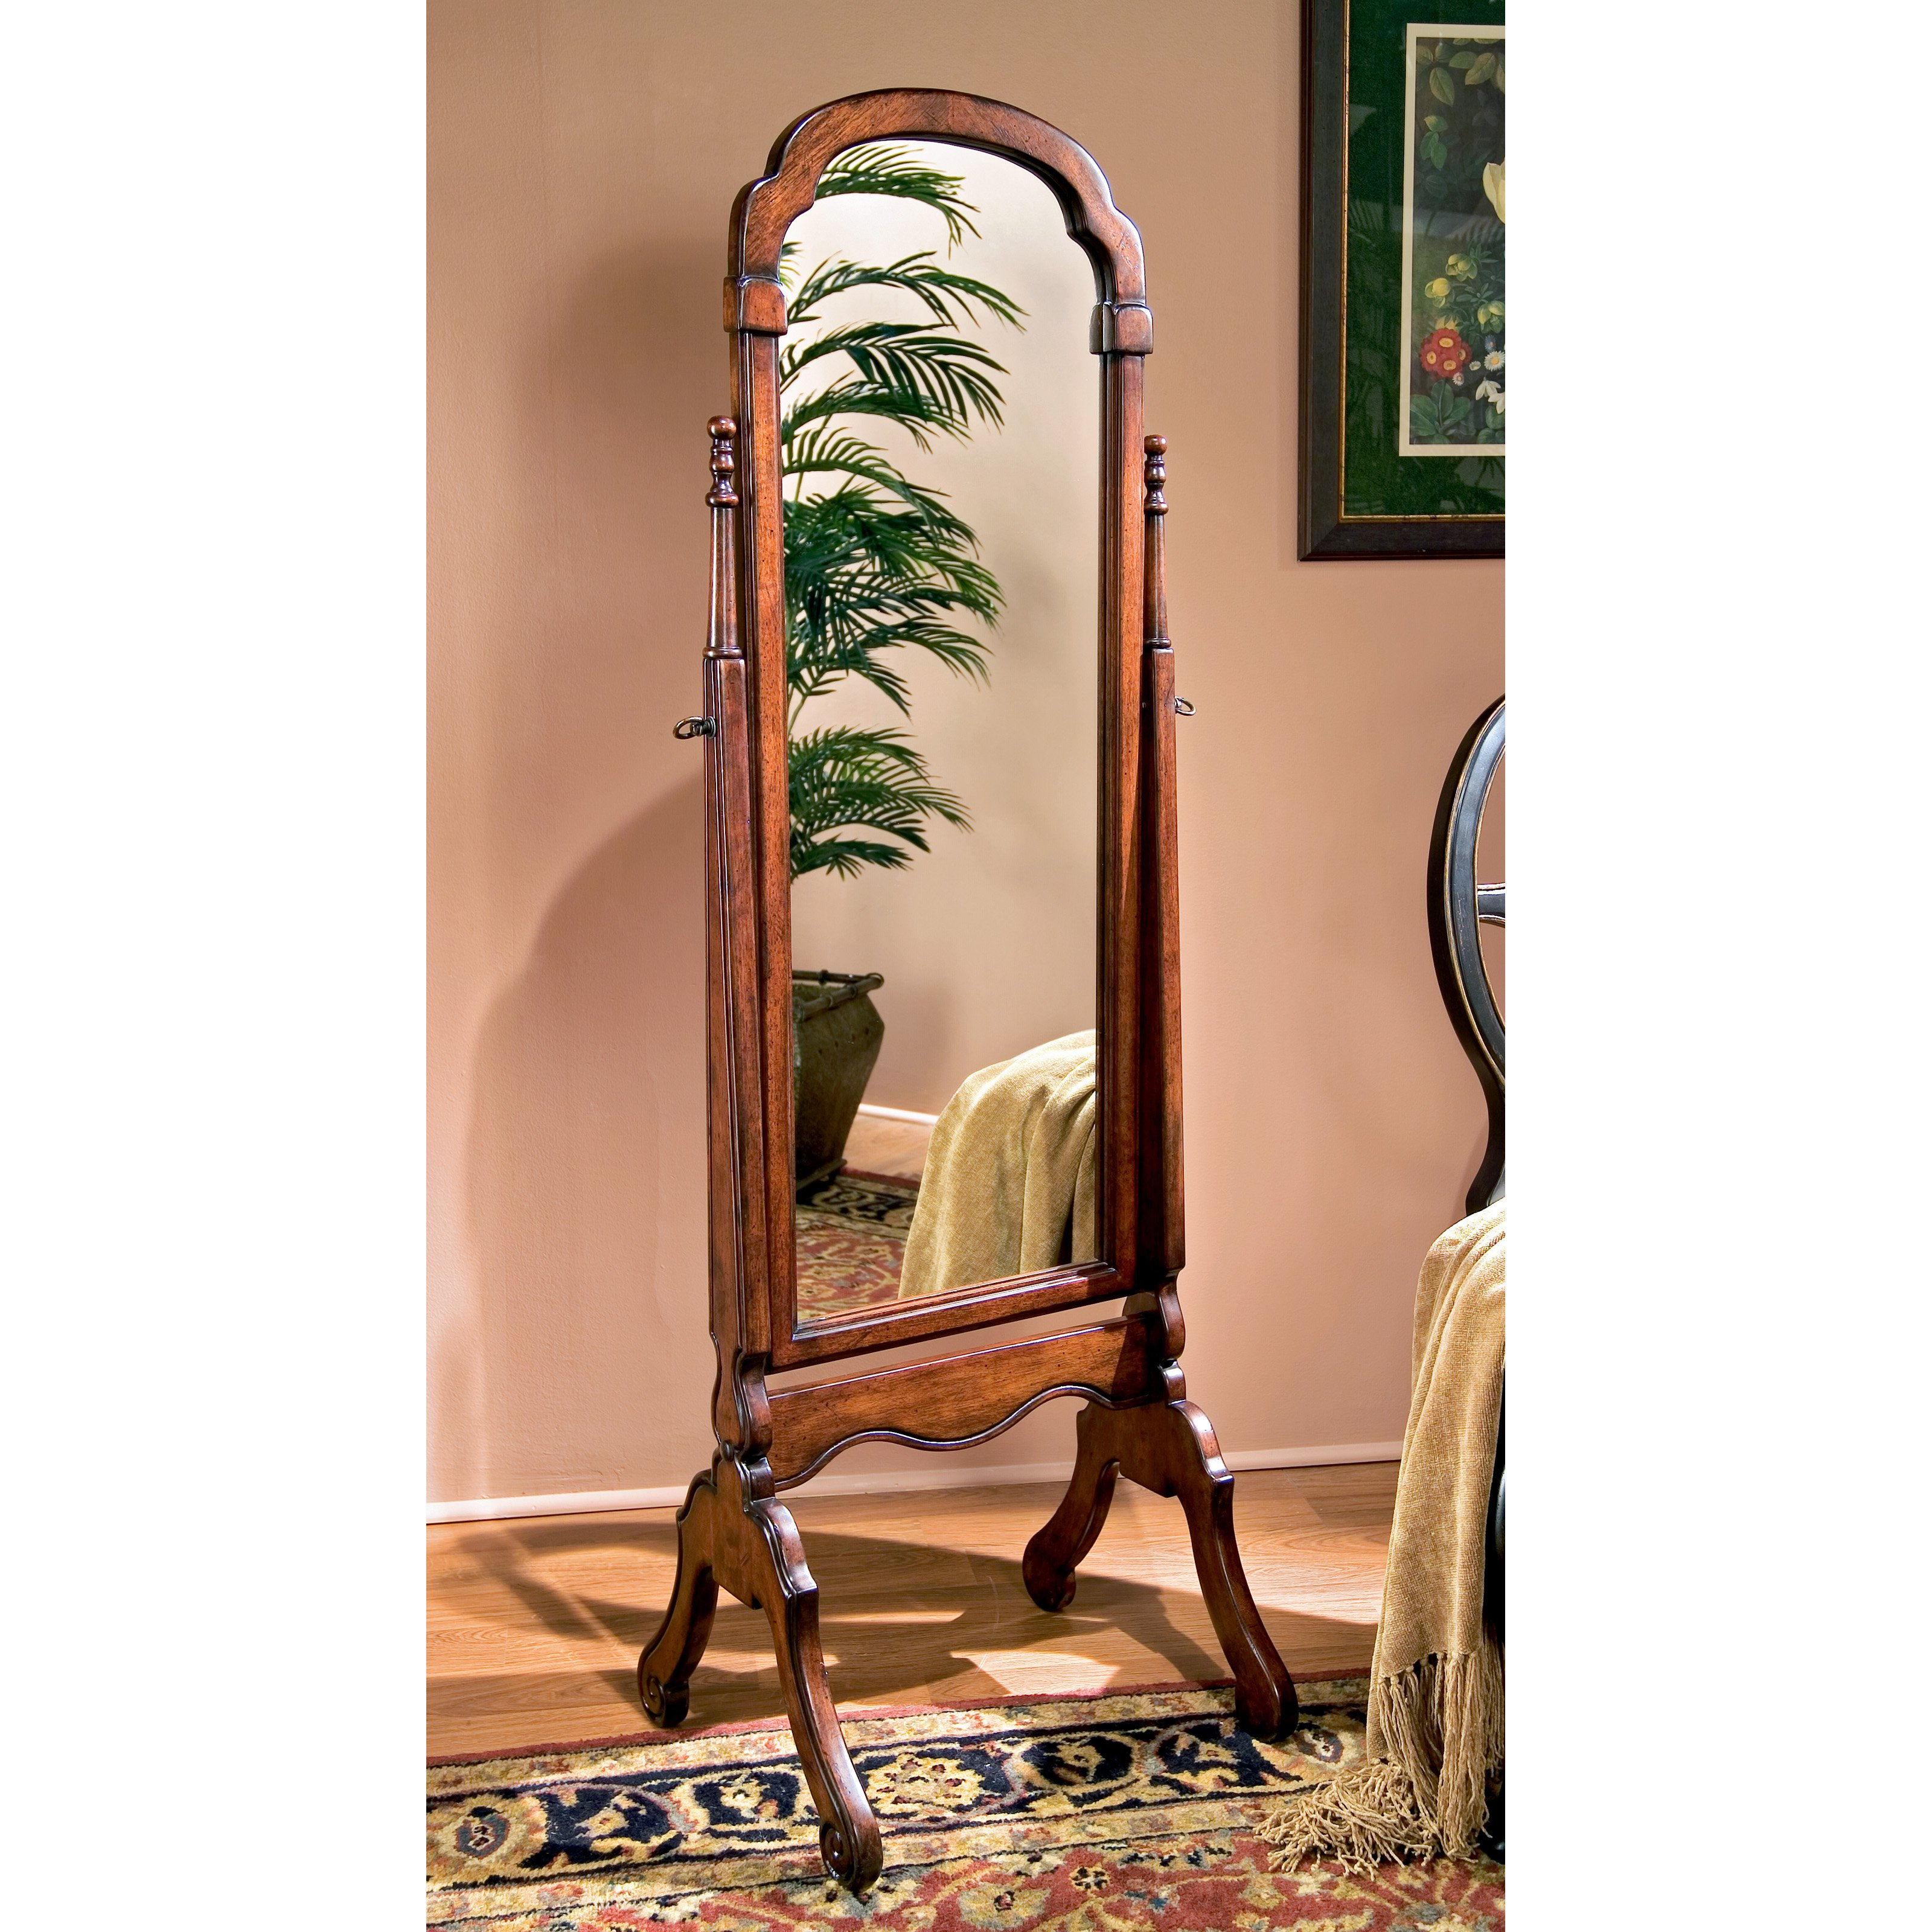 Rich Cherry Traditional Detailed Cheval Mirror - 15W x 60H in.